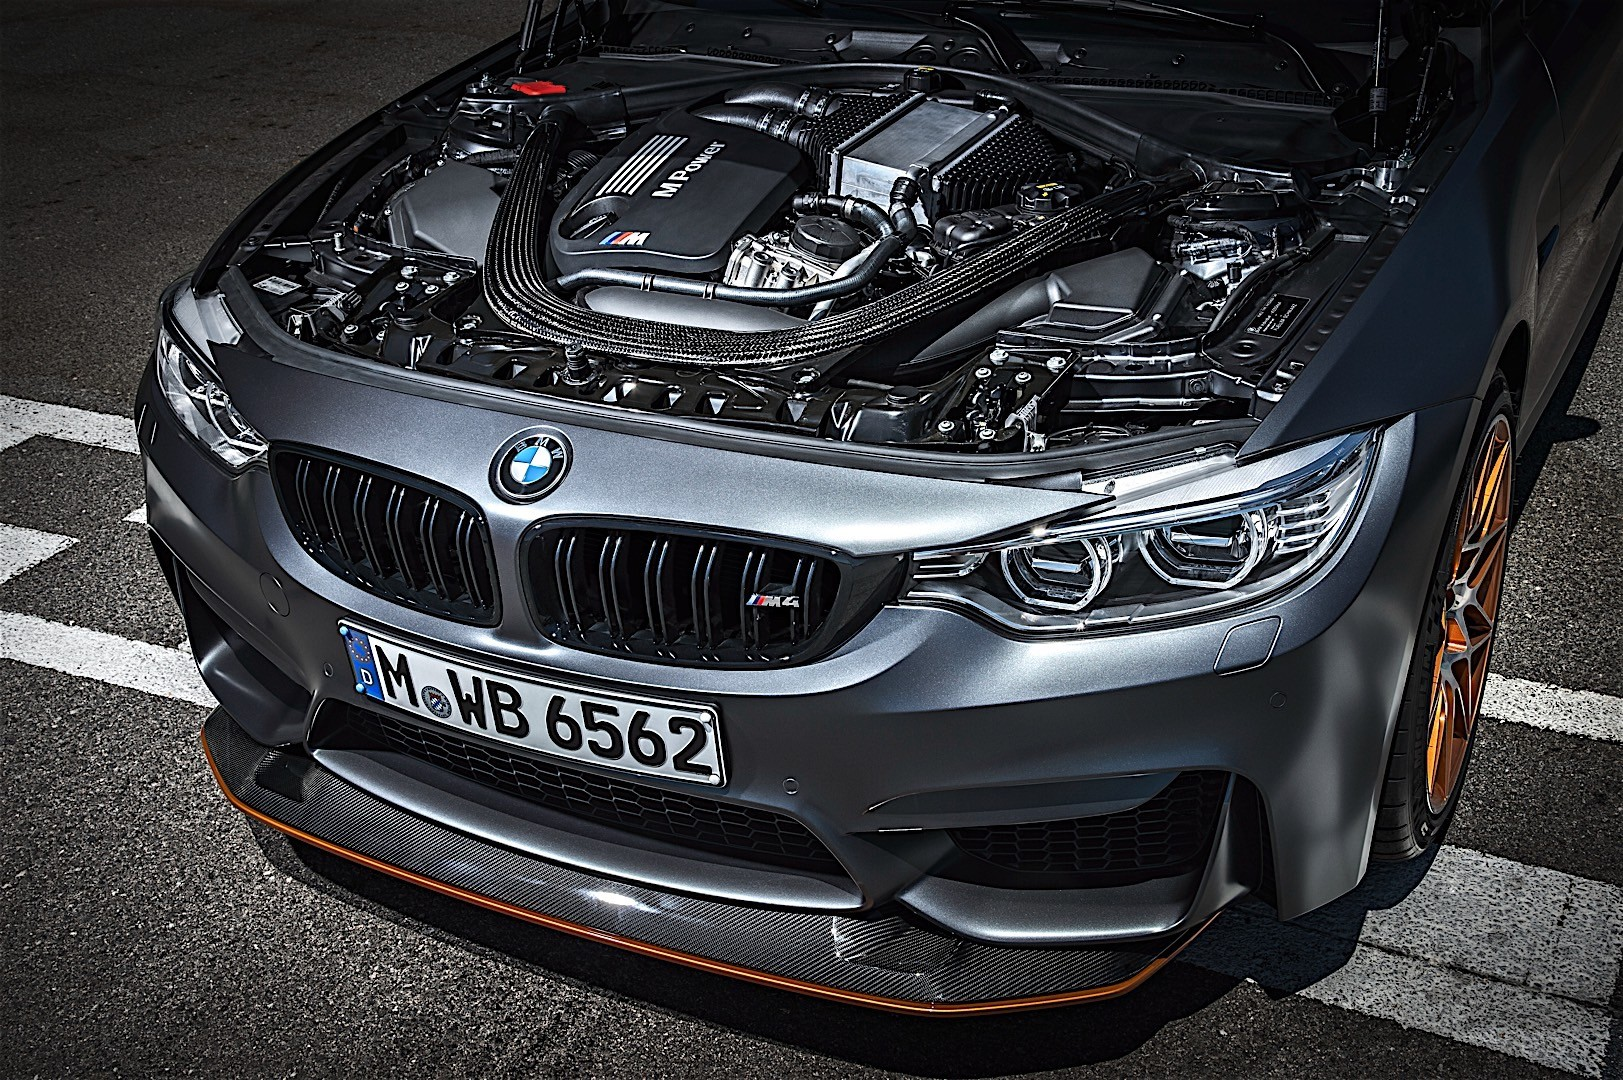 91 New 2020 BMW M4 Gts Release Date